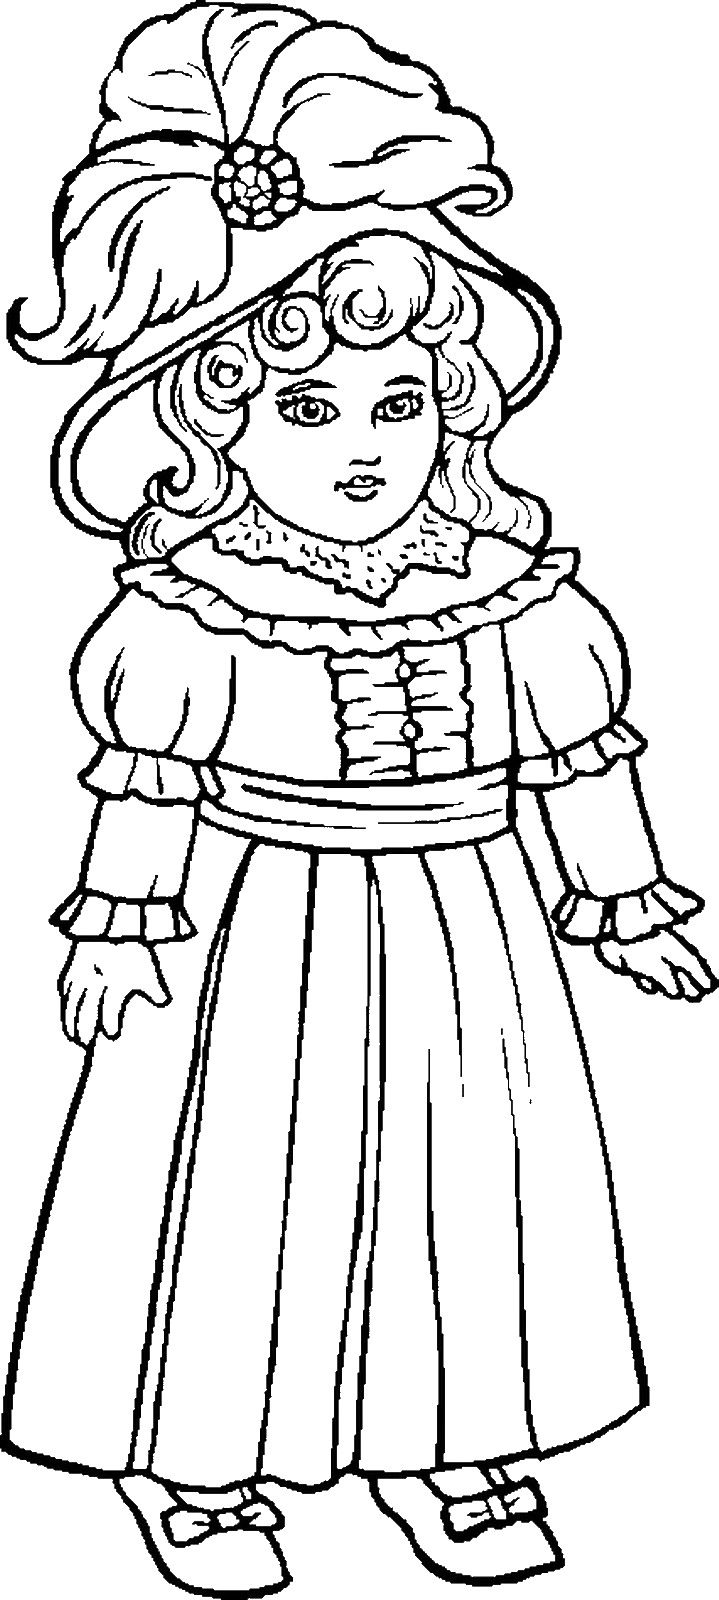 doll coloring page doll colouring page coloring doll page